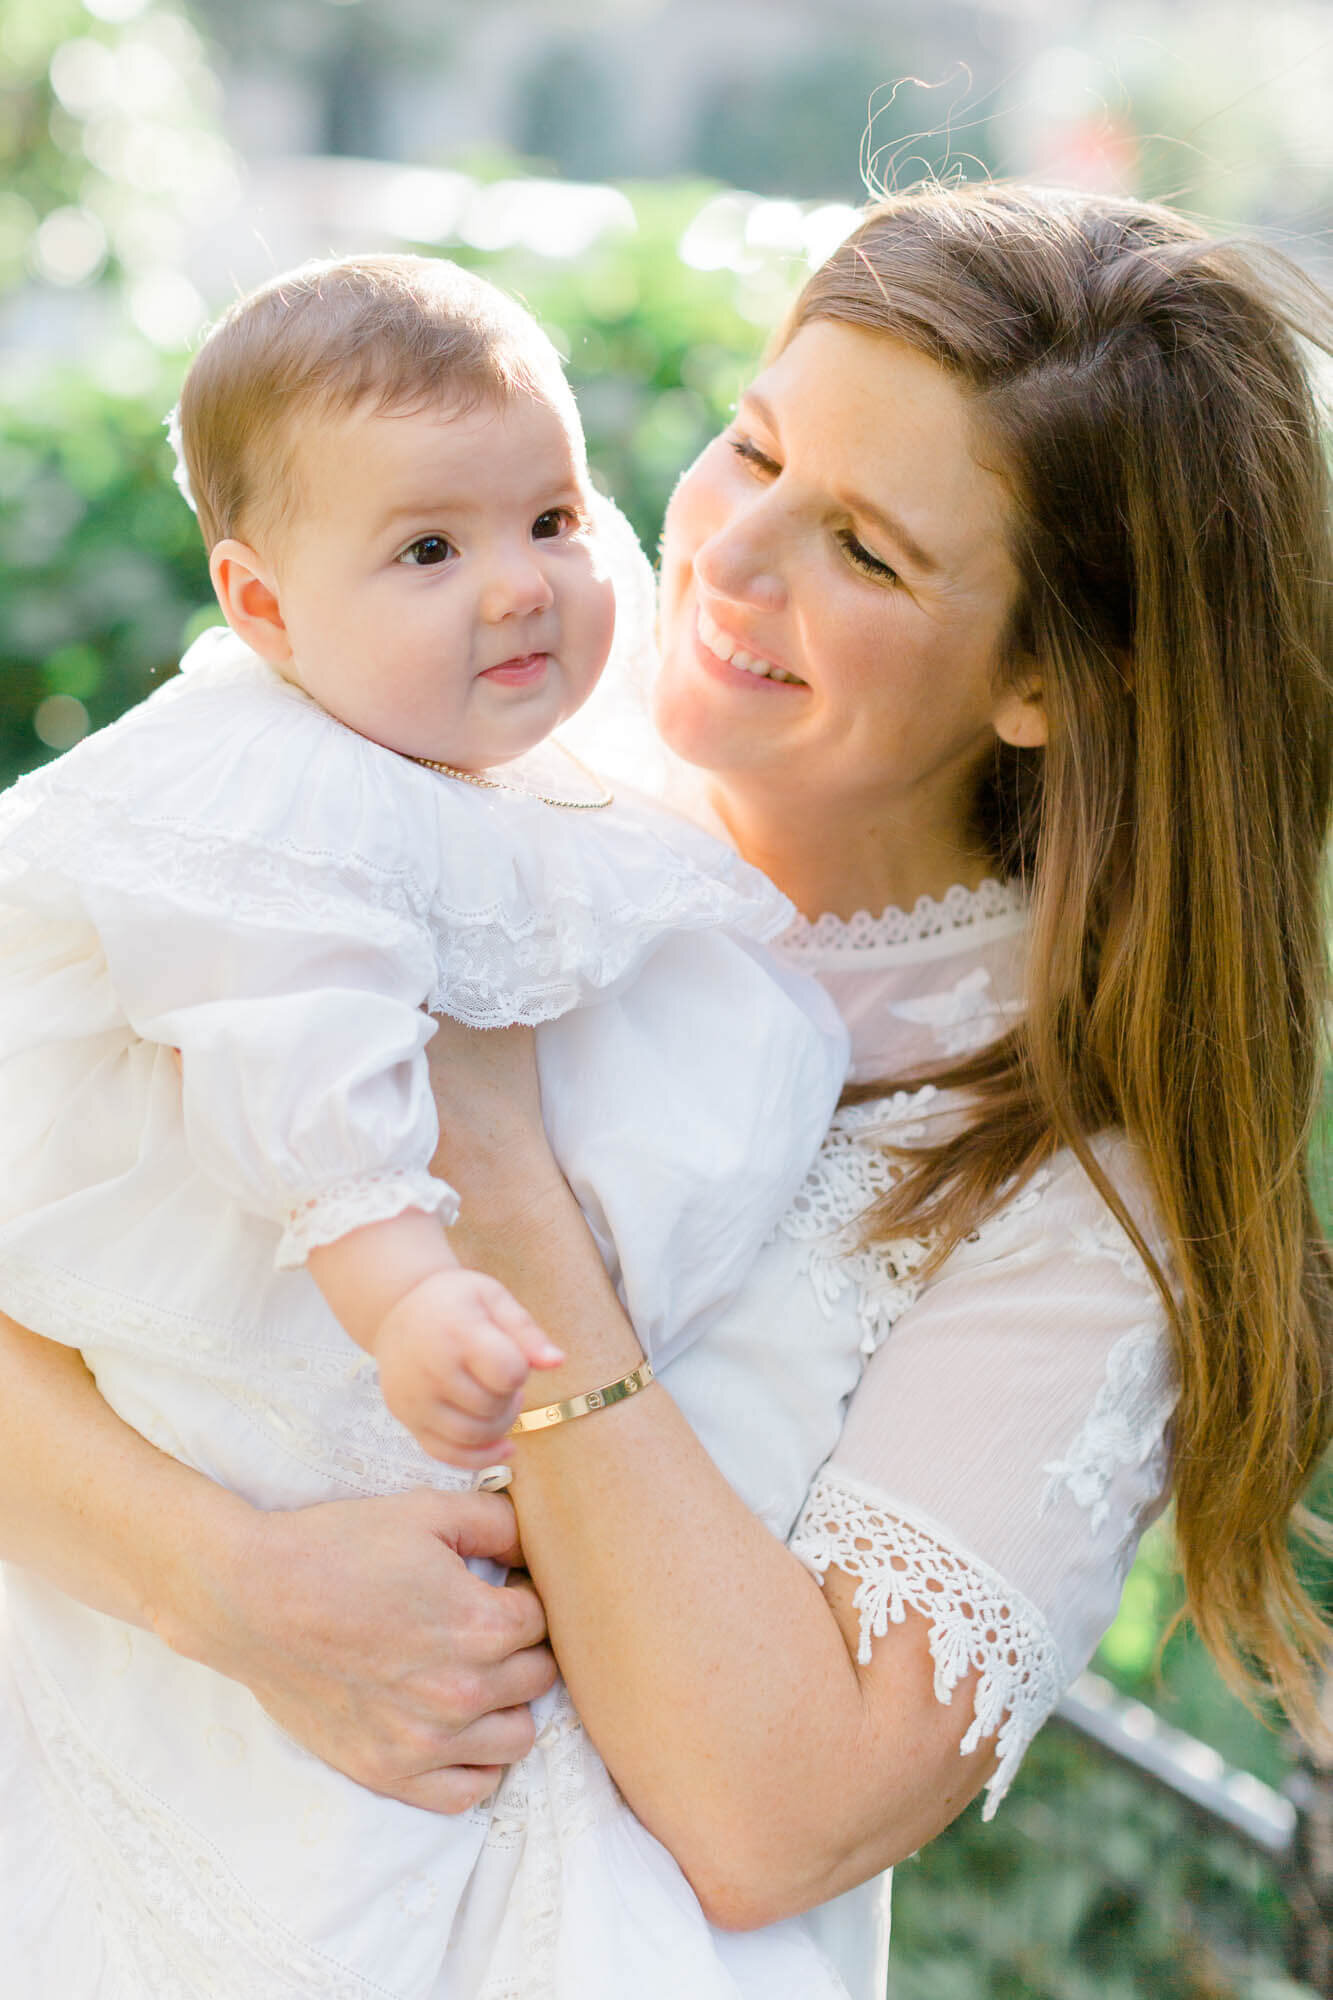 Madison Square Park family photography session by top NYC family photographer, Jacqueline Clair